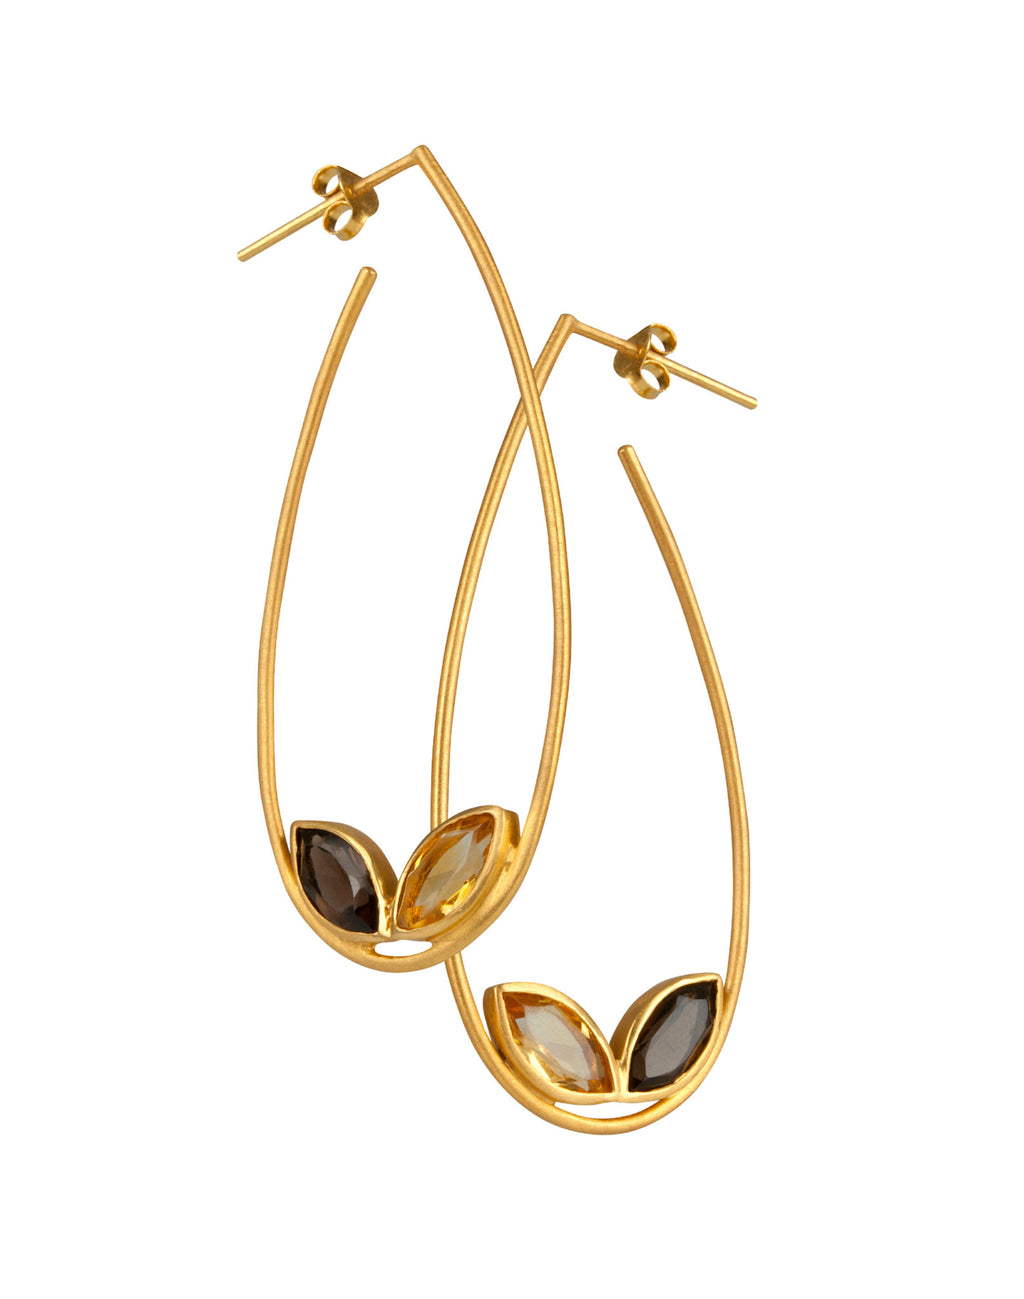 Citrine and Smoky Quartz Hoop Earrings from the Willow Collection